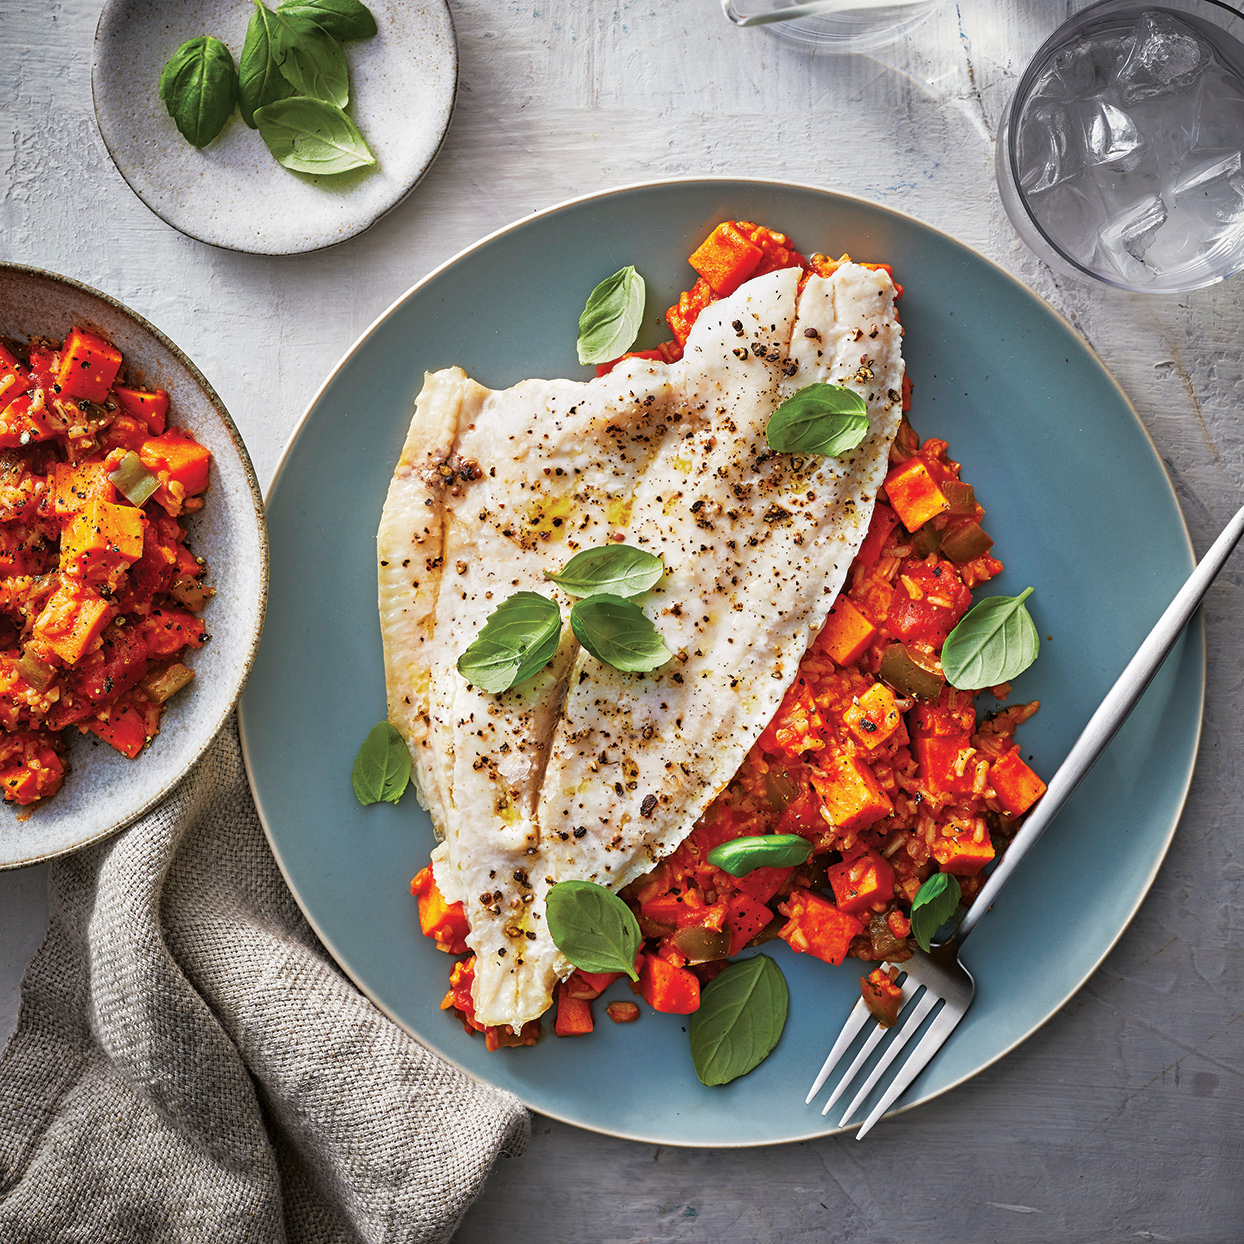 This dish boasts delicate, flaky flounder and a sweet, fragrant curry made with rich coconut milk, tender sweet potatoes and brown rice. The flounder—which can be substituted with tilapia, if desired—cooks well on top of the curry. Adding the flounder to the slow cooker for the last 20 minutes allows it to steam without overcooking. For the prettiest appearance, substitute whole fresh basil leaves for the sliced basil. To save prep time, purchase a package of prepeeled, prechopped sweet potatoes, such as the 16-ounce steam-in-bag package from Archer Farms, and use 14 ounces from it.